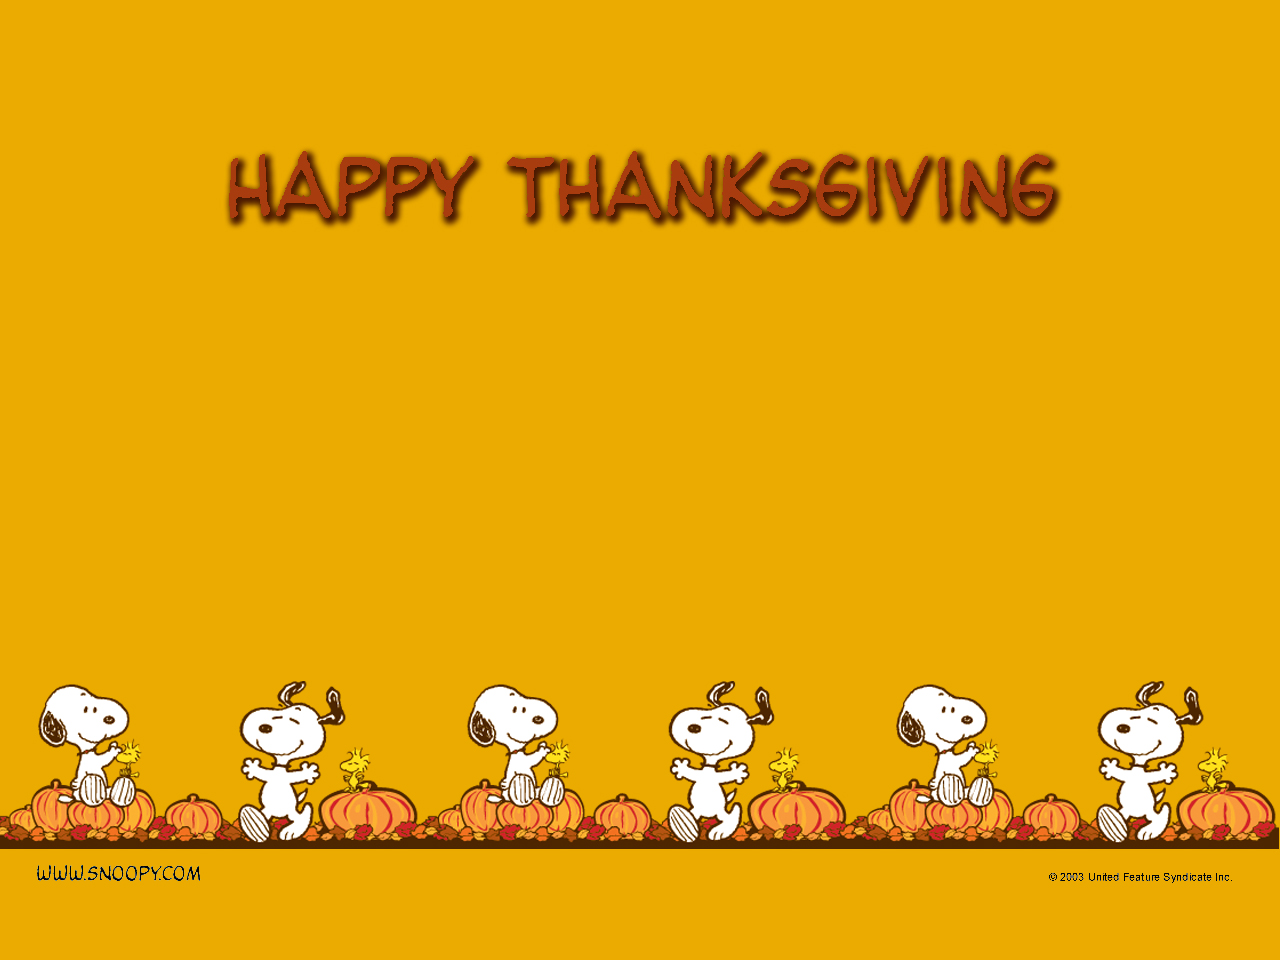 Thanksgiving Wallpapers: 25 Free Desktop Backgrounds